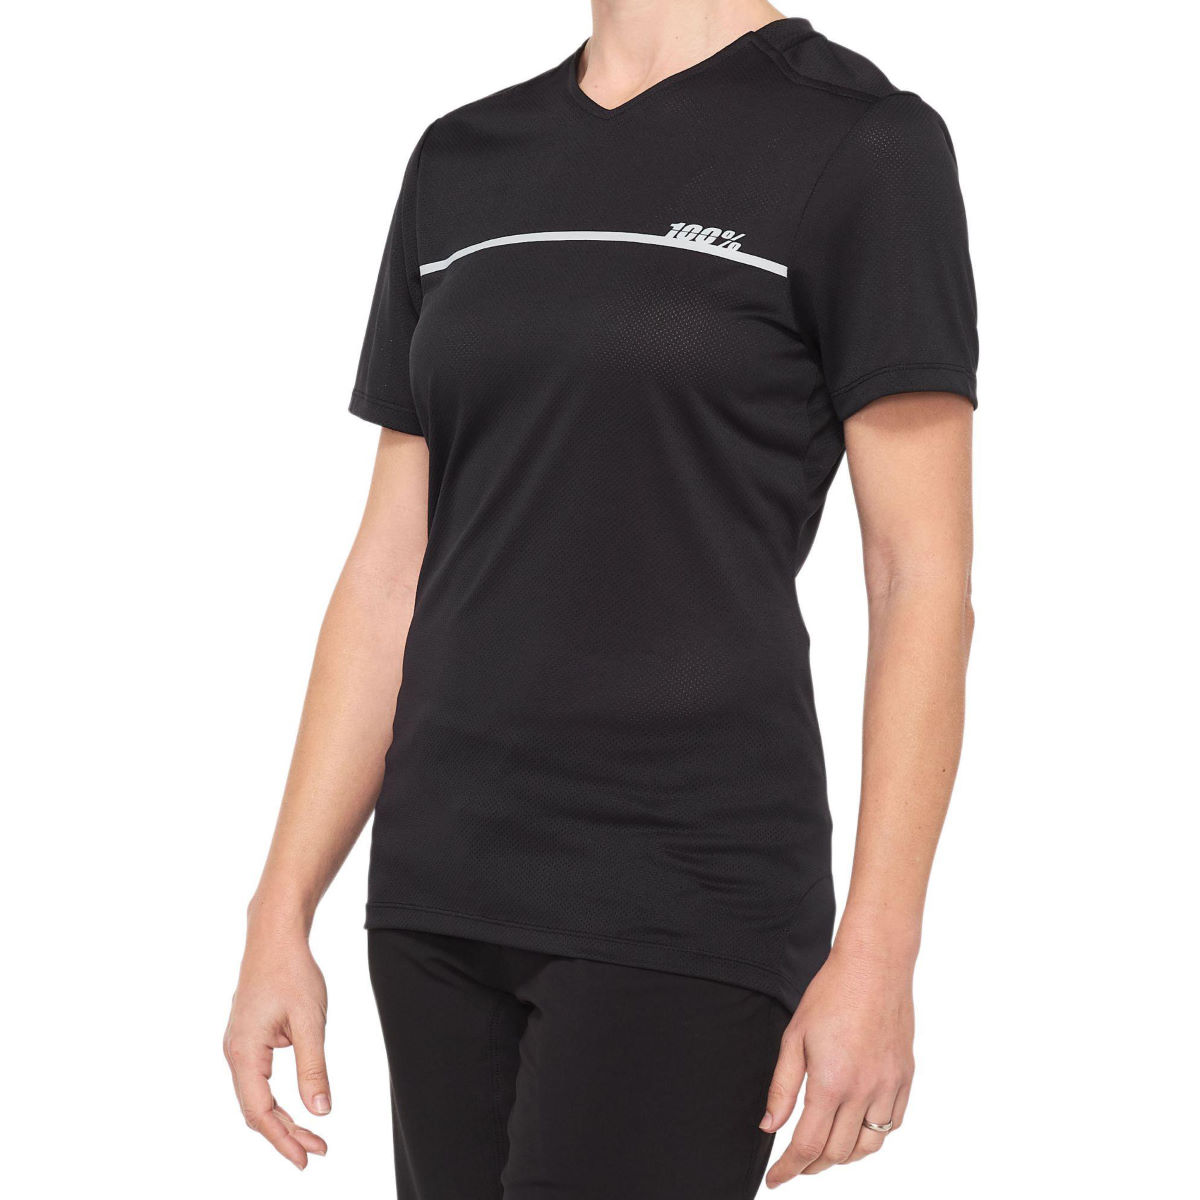 100% Womens Ridecamp Jersey - Xl Black/grey  Jerseys